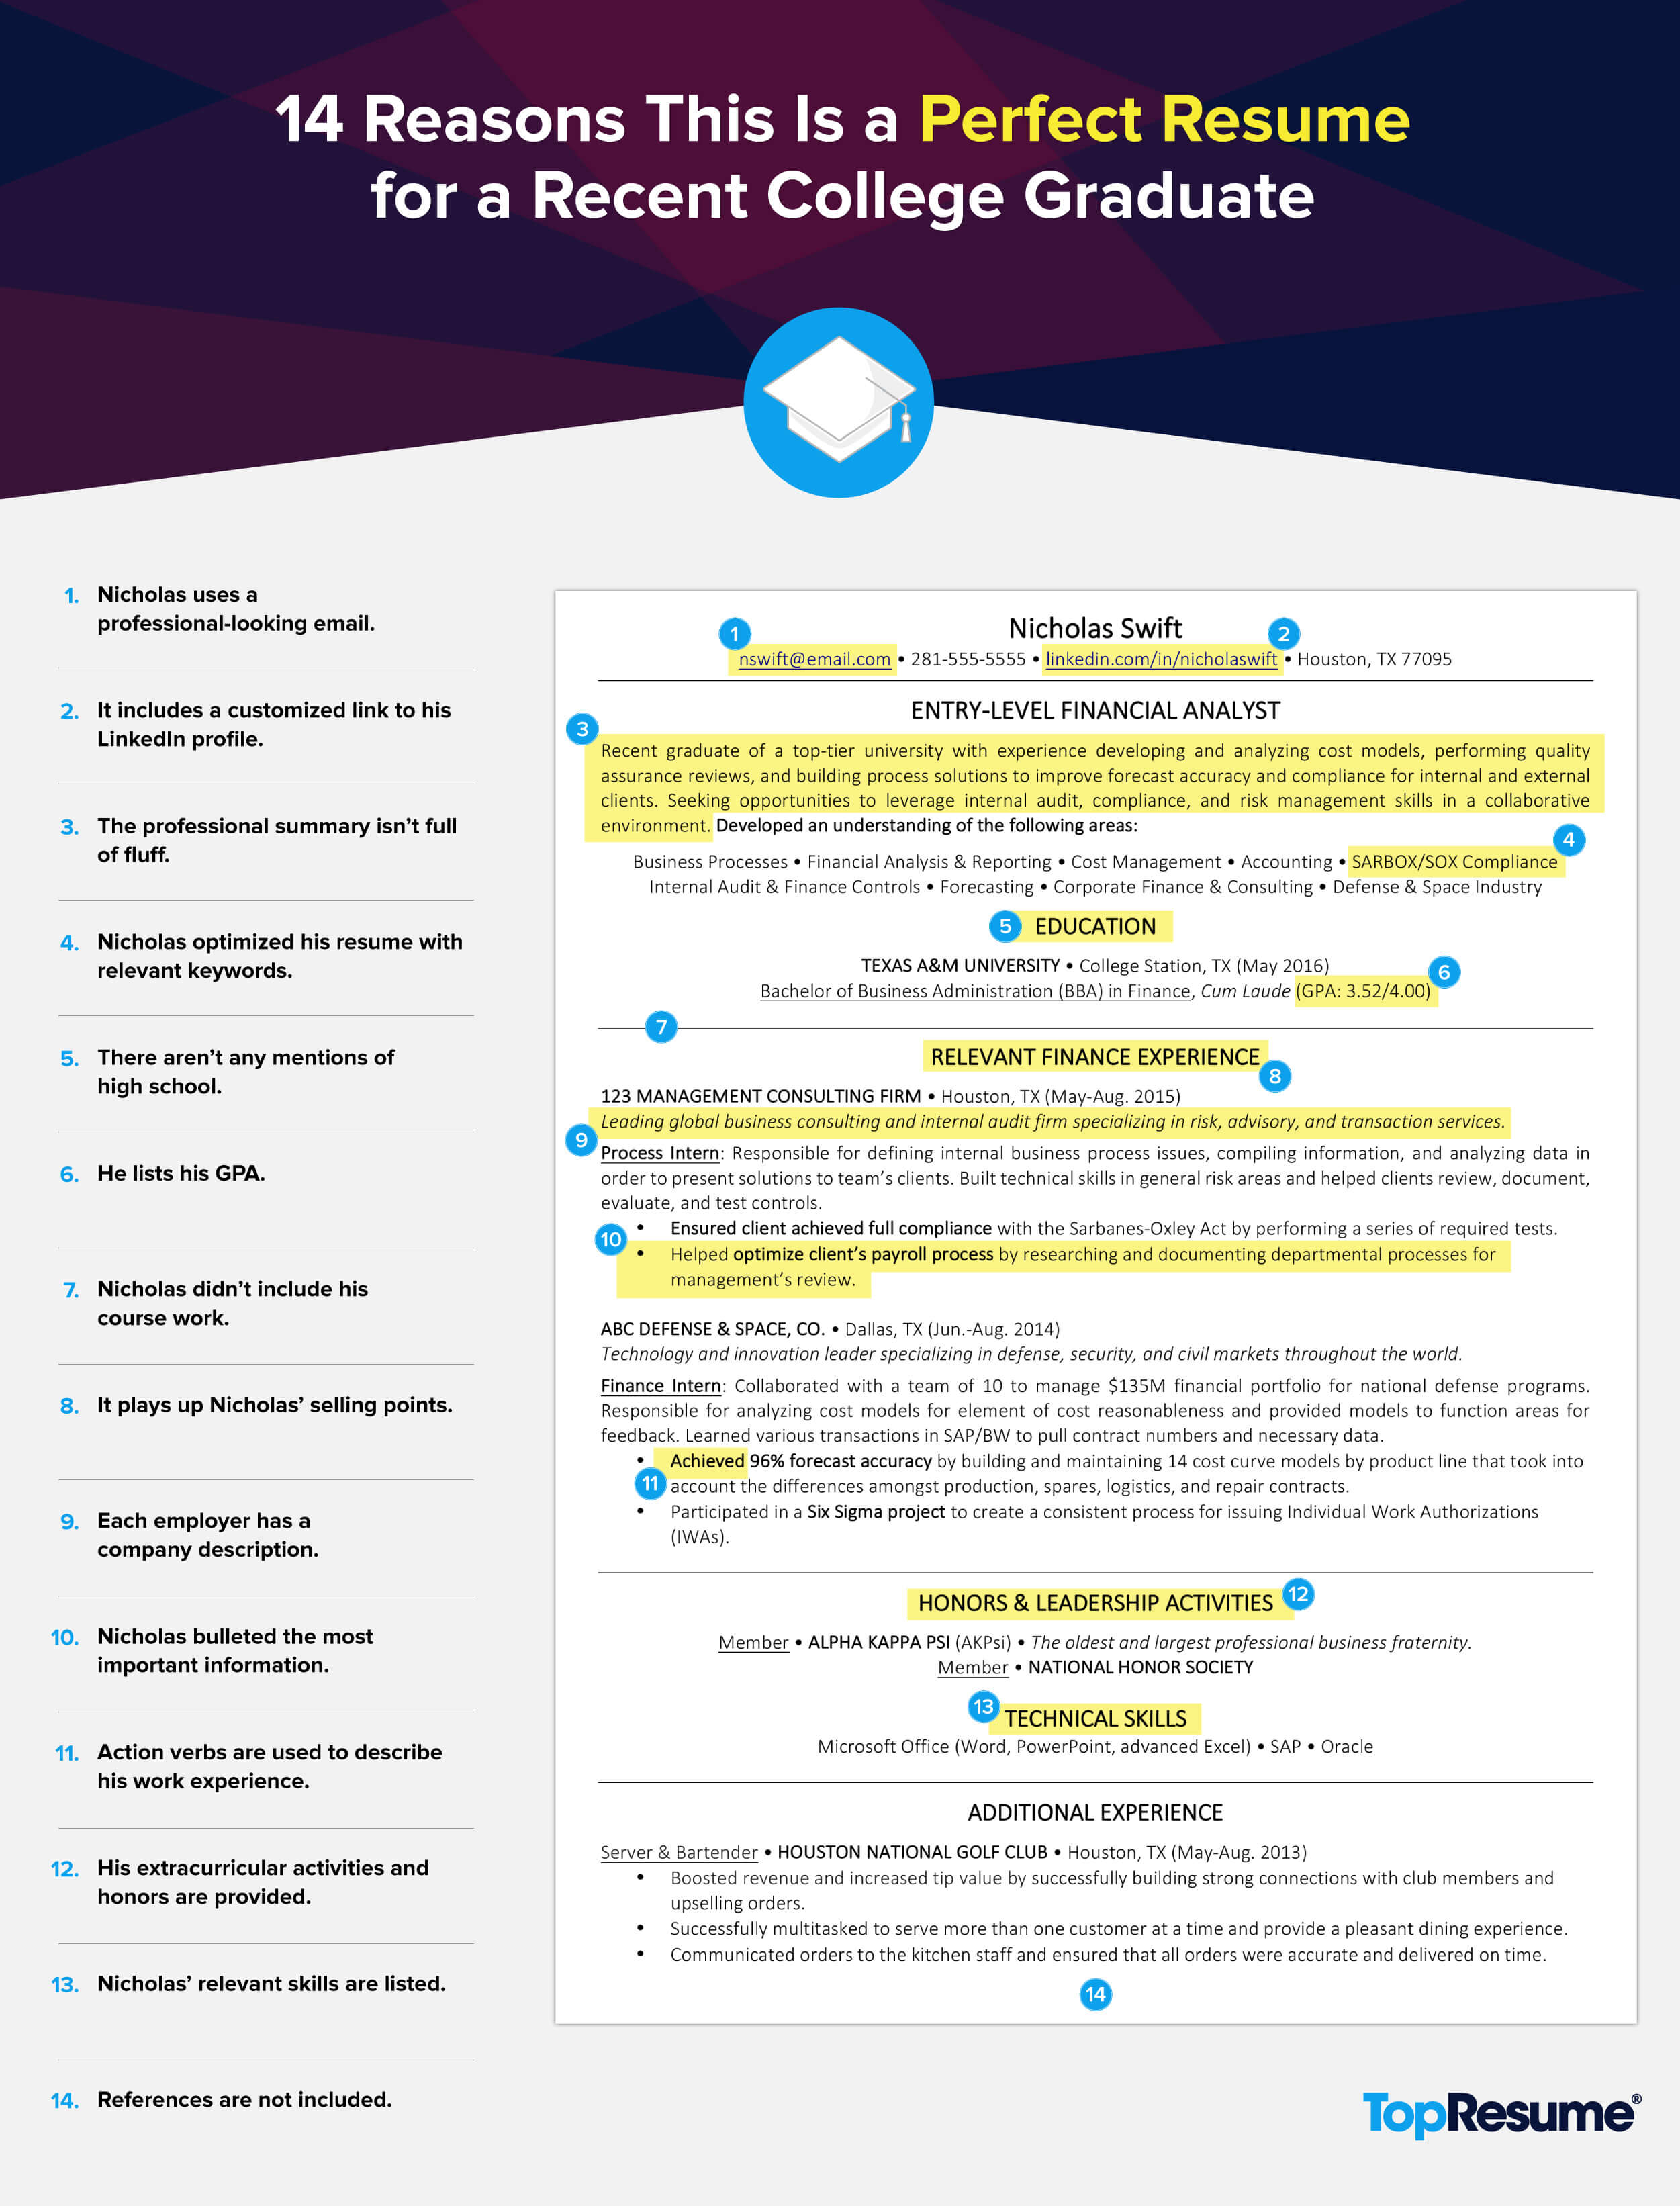 resume Pictures On Resumes 14 reasons this is a perfect recent college graduate resume topresume resume